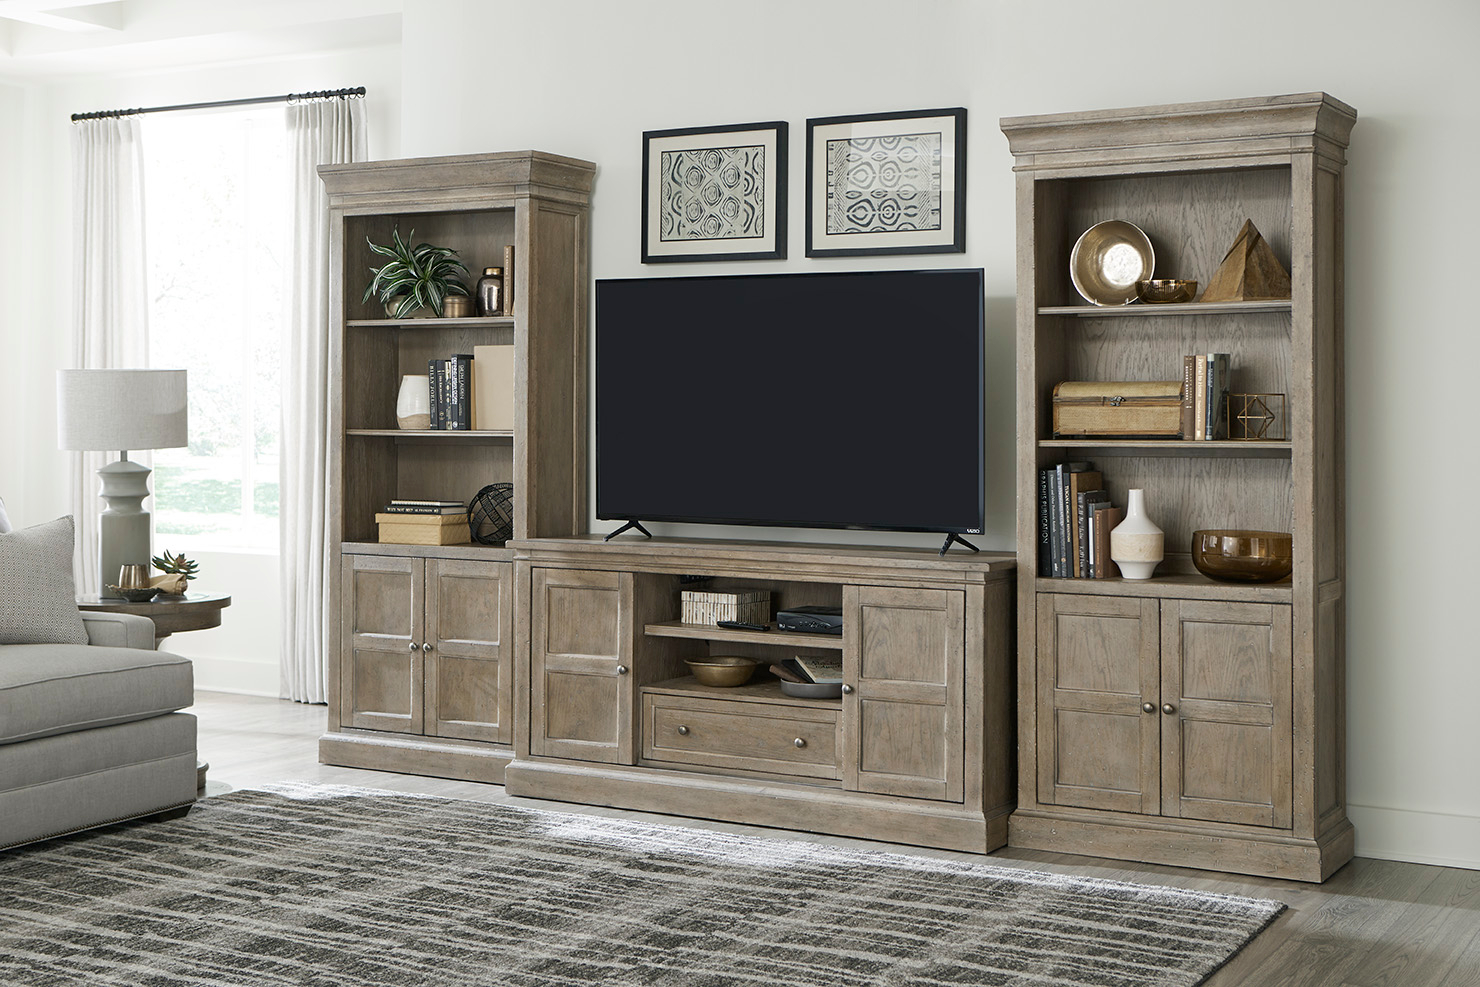 Donelson Media Console and Bookcases by Hammary at Mueller Furniture